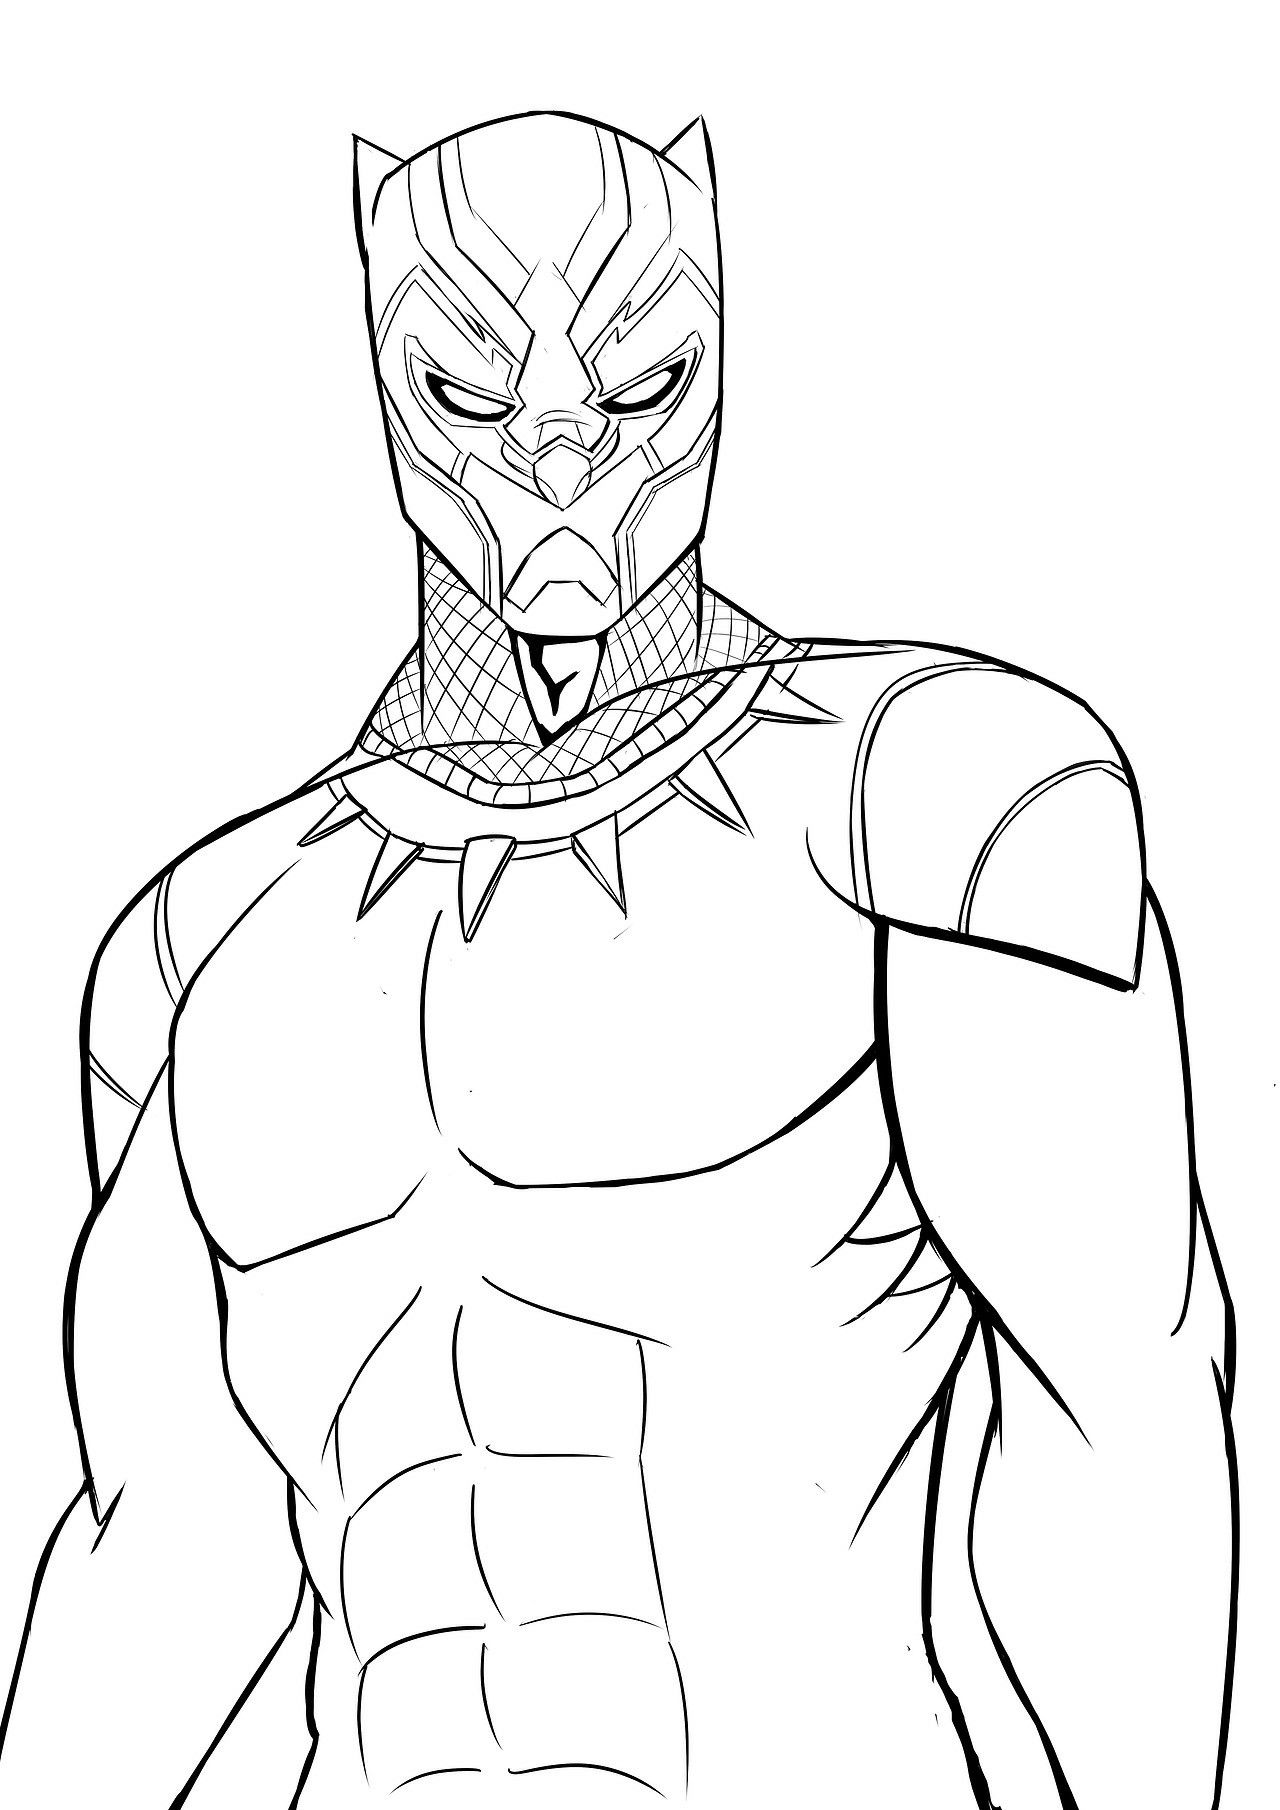 Superhero Thanos Coloring Pages: Black Panther (Black & White Art)